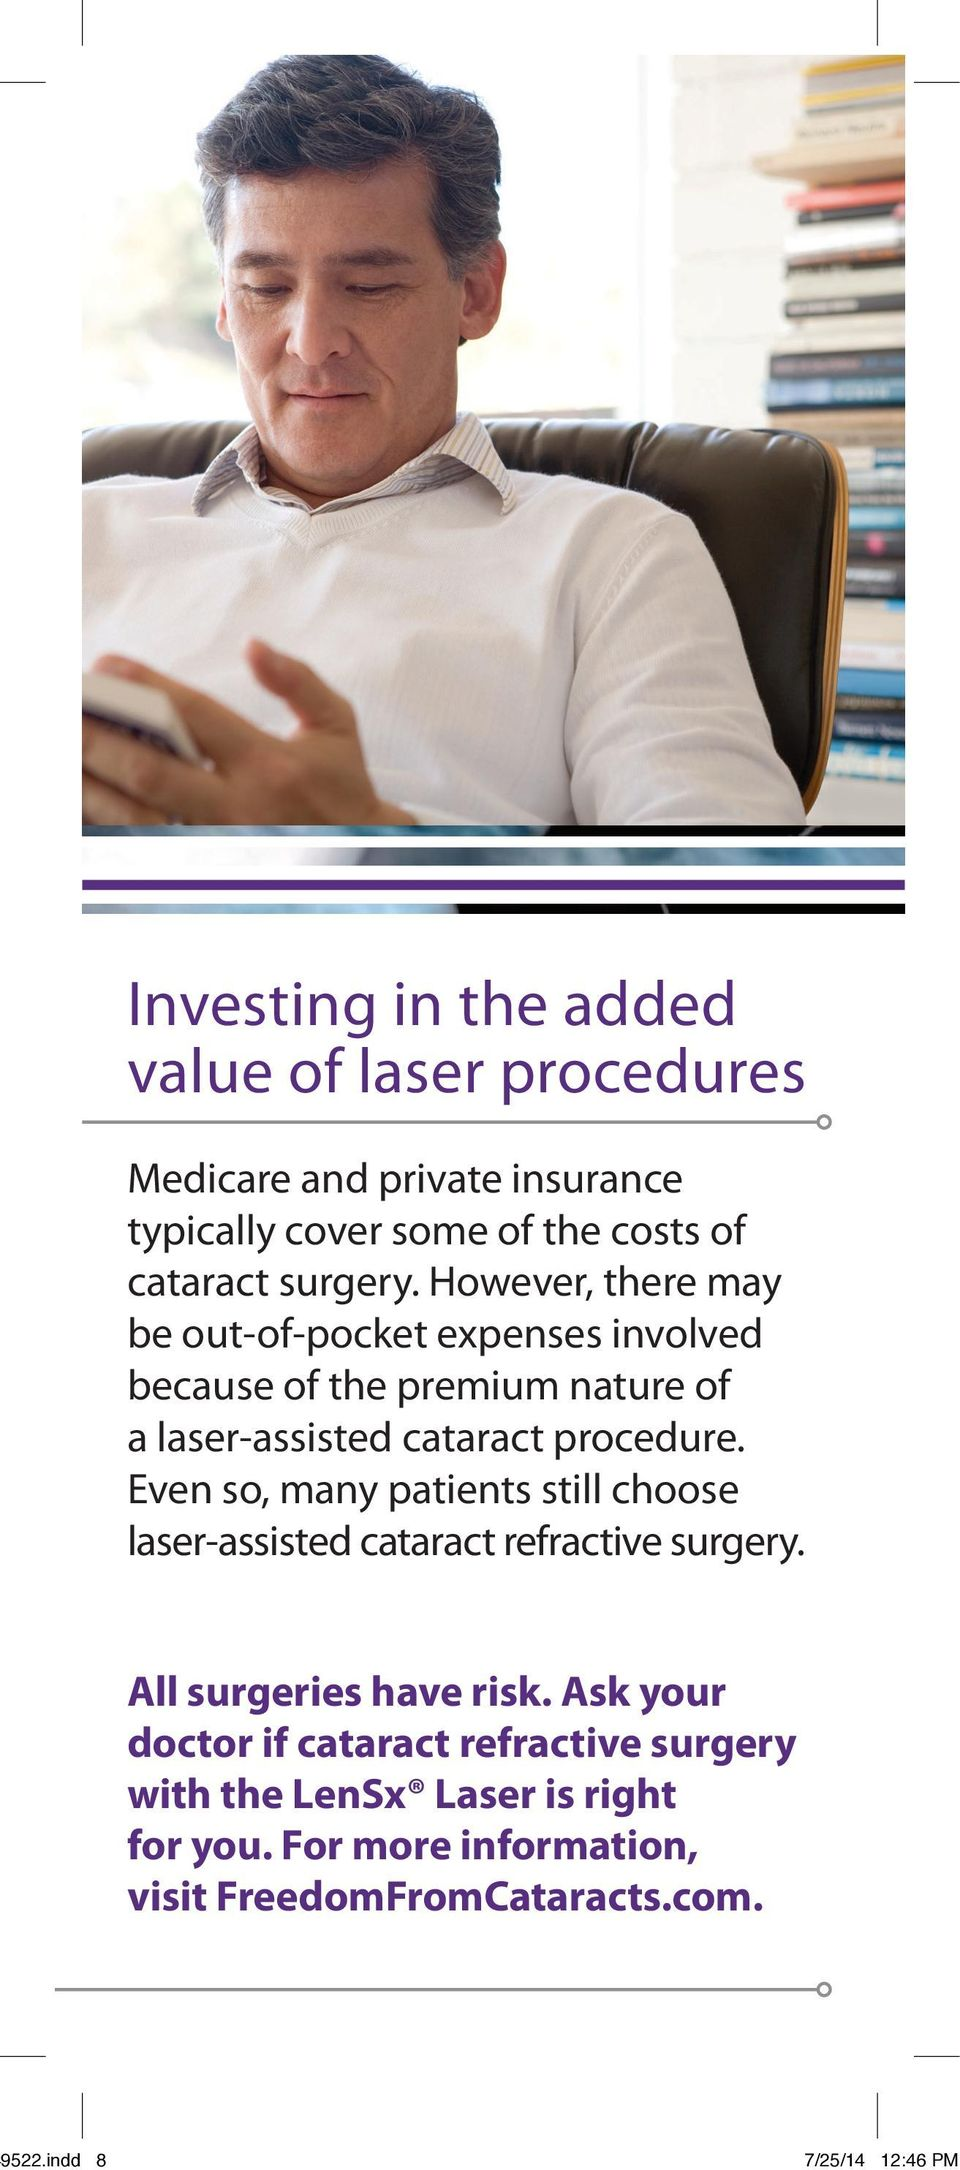 However, there may be out-of-pocket expenses involved because of the premium nature of a laser-assisted cataract procedure.